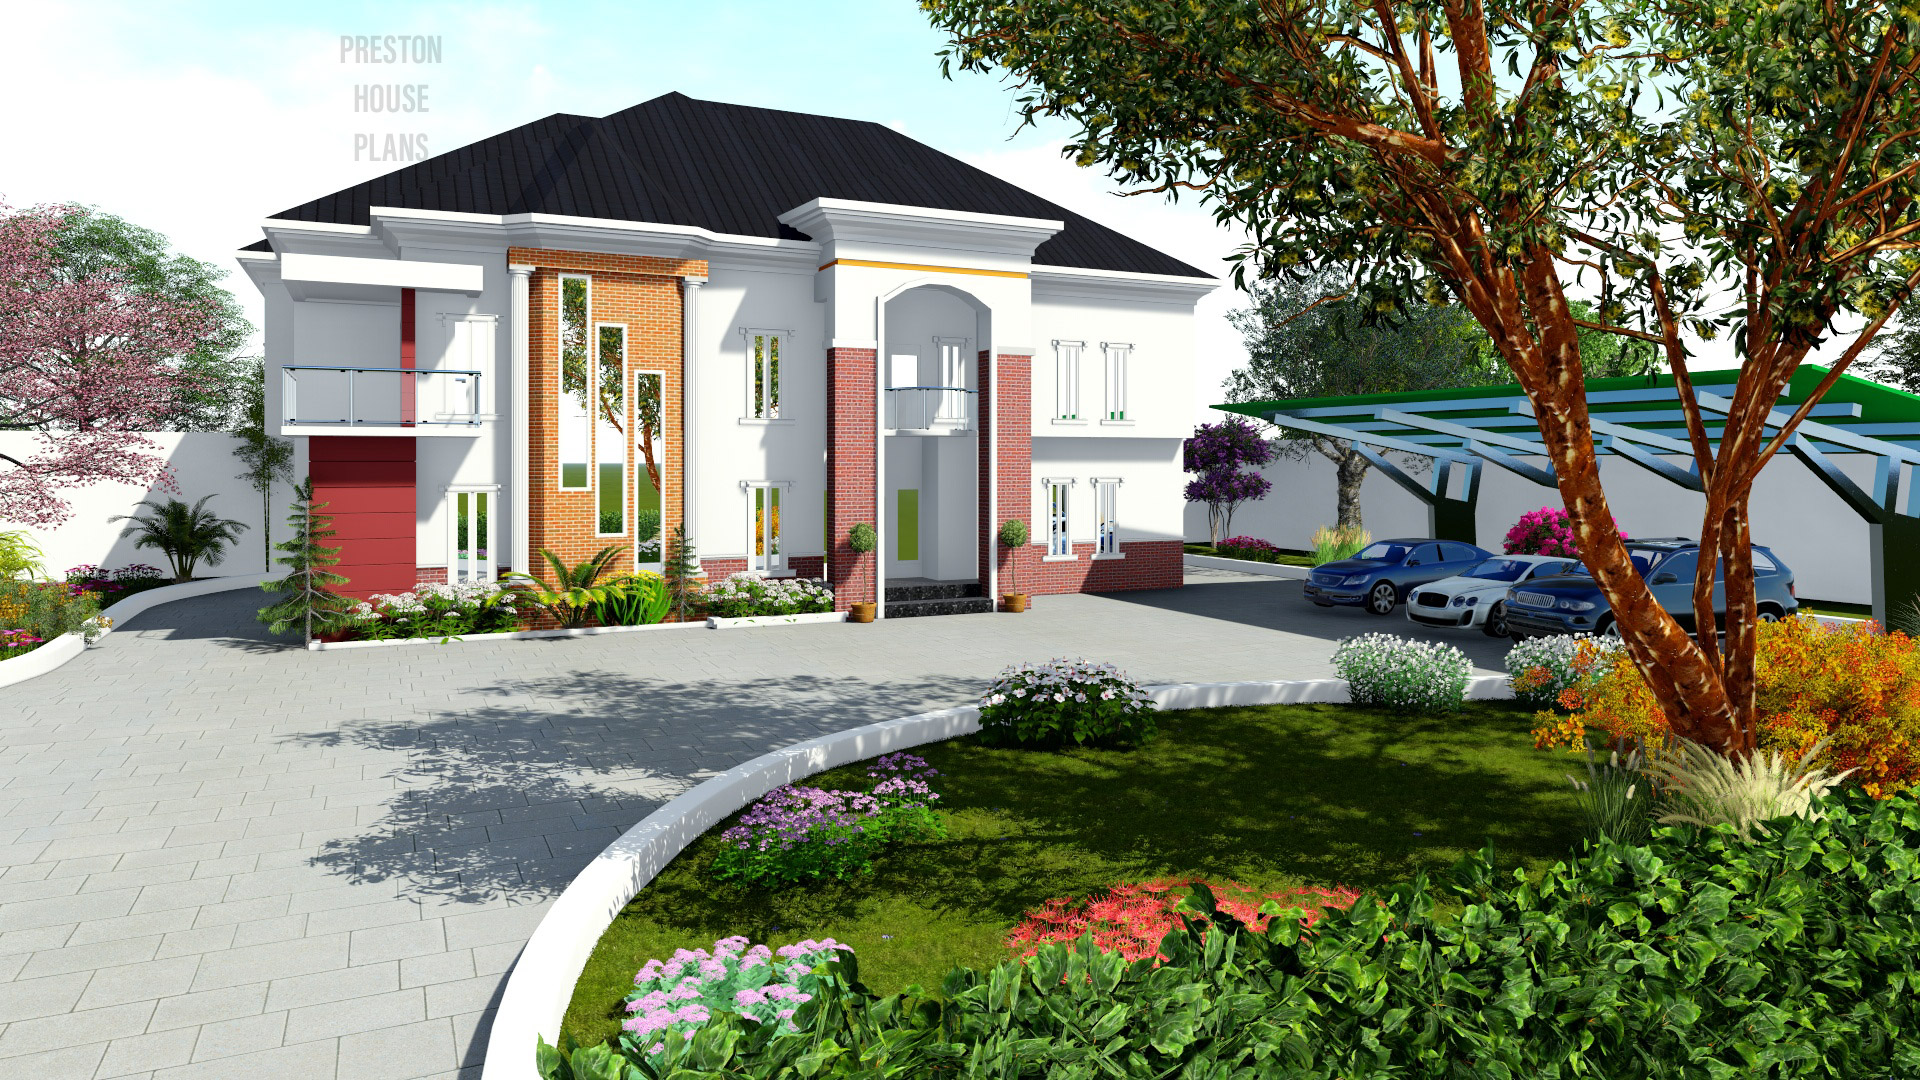 Five bedroom house plan with an extra independent bedroom